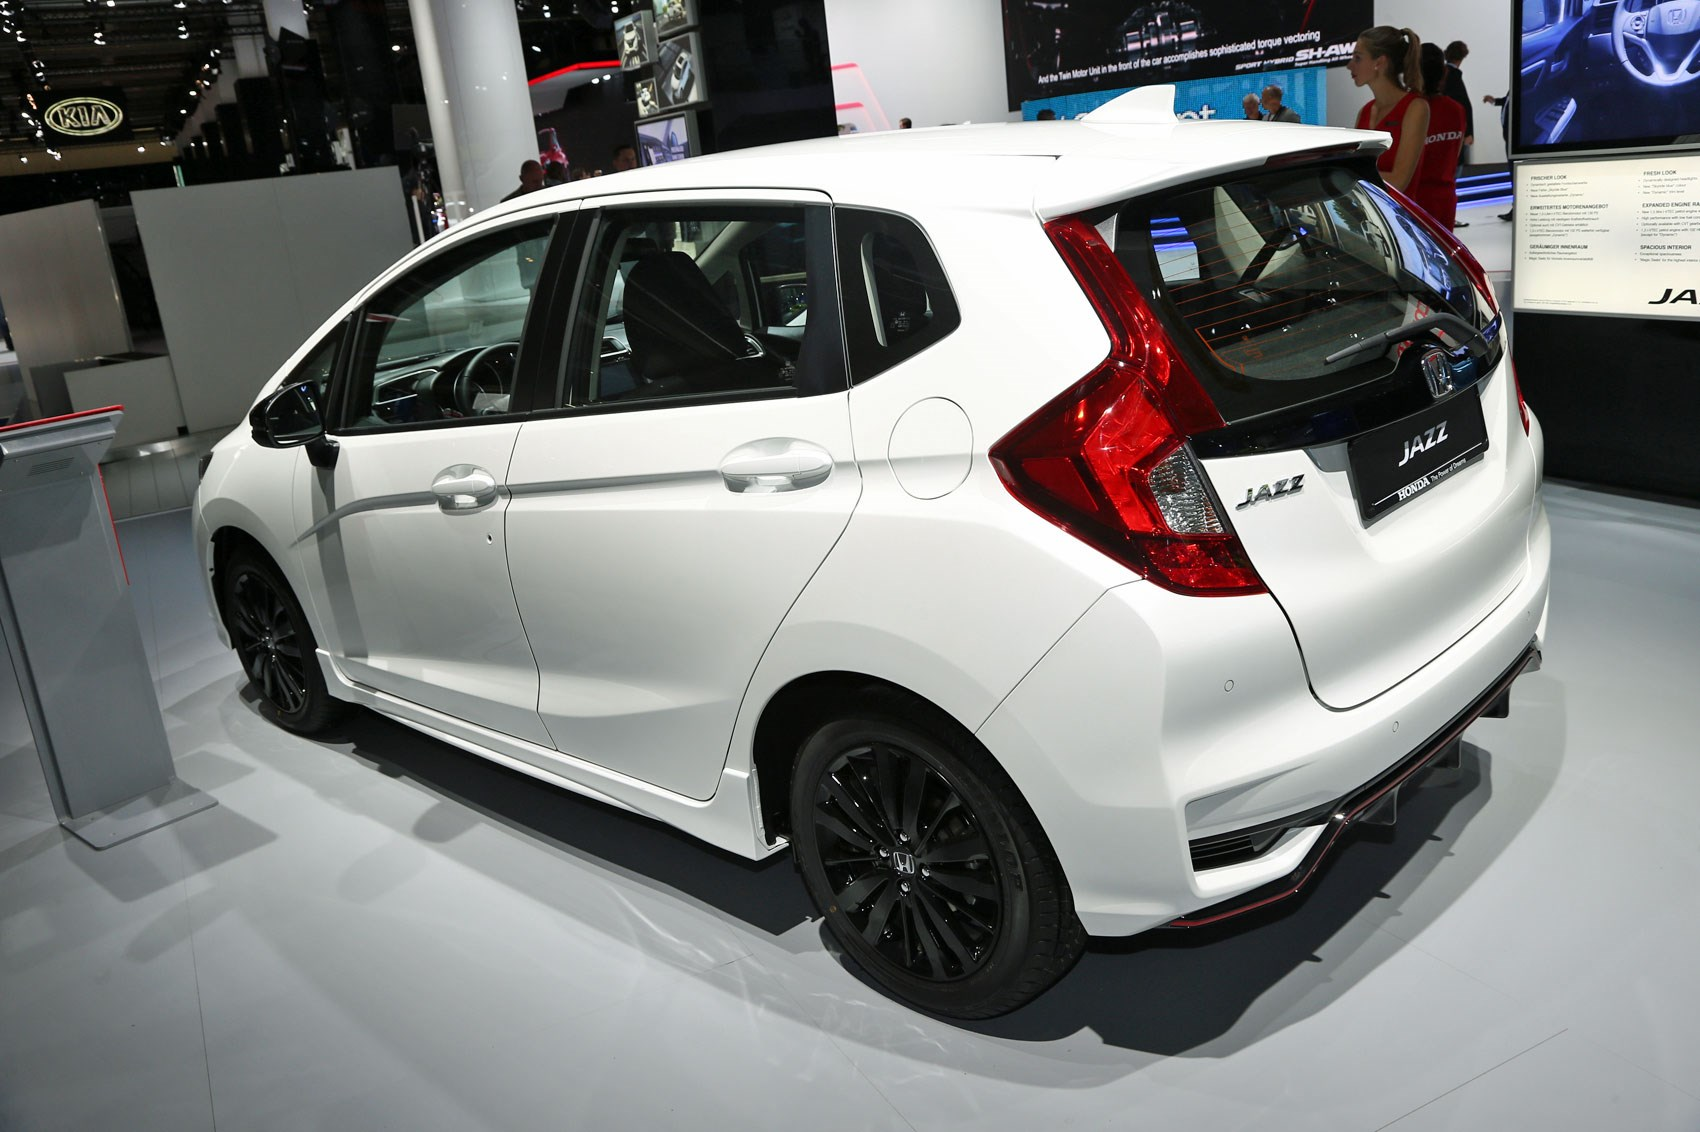 Honda Jazz Sport gets red pinstripe detailing - just like every other  supermini